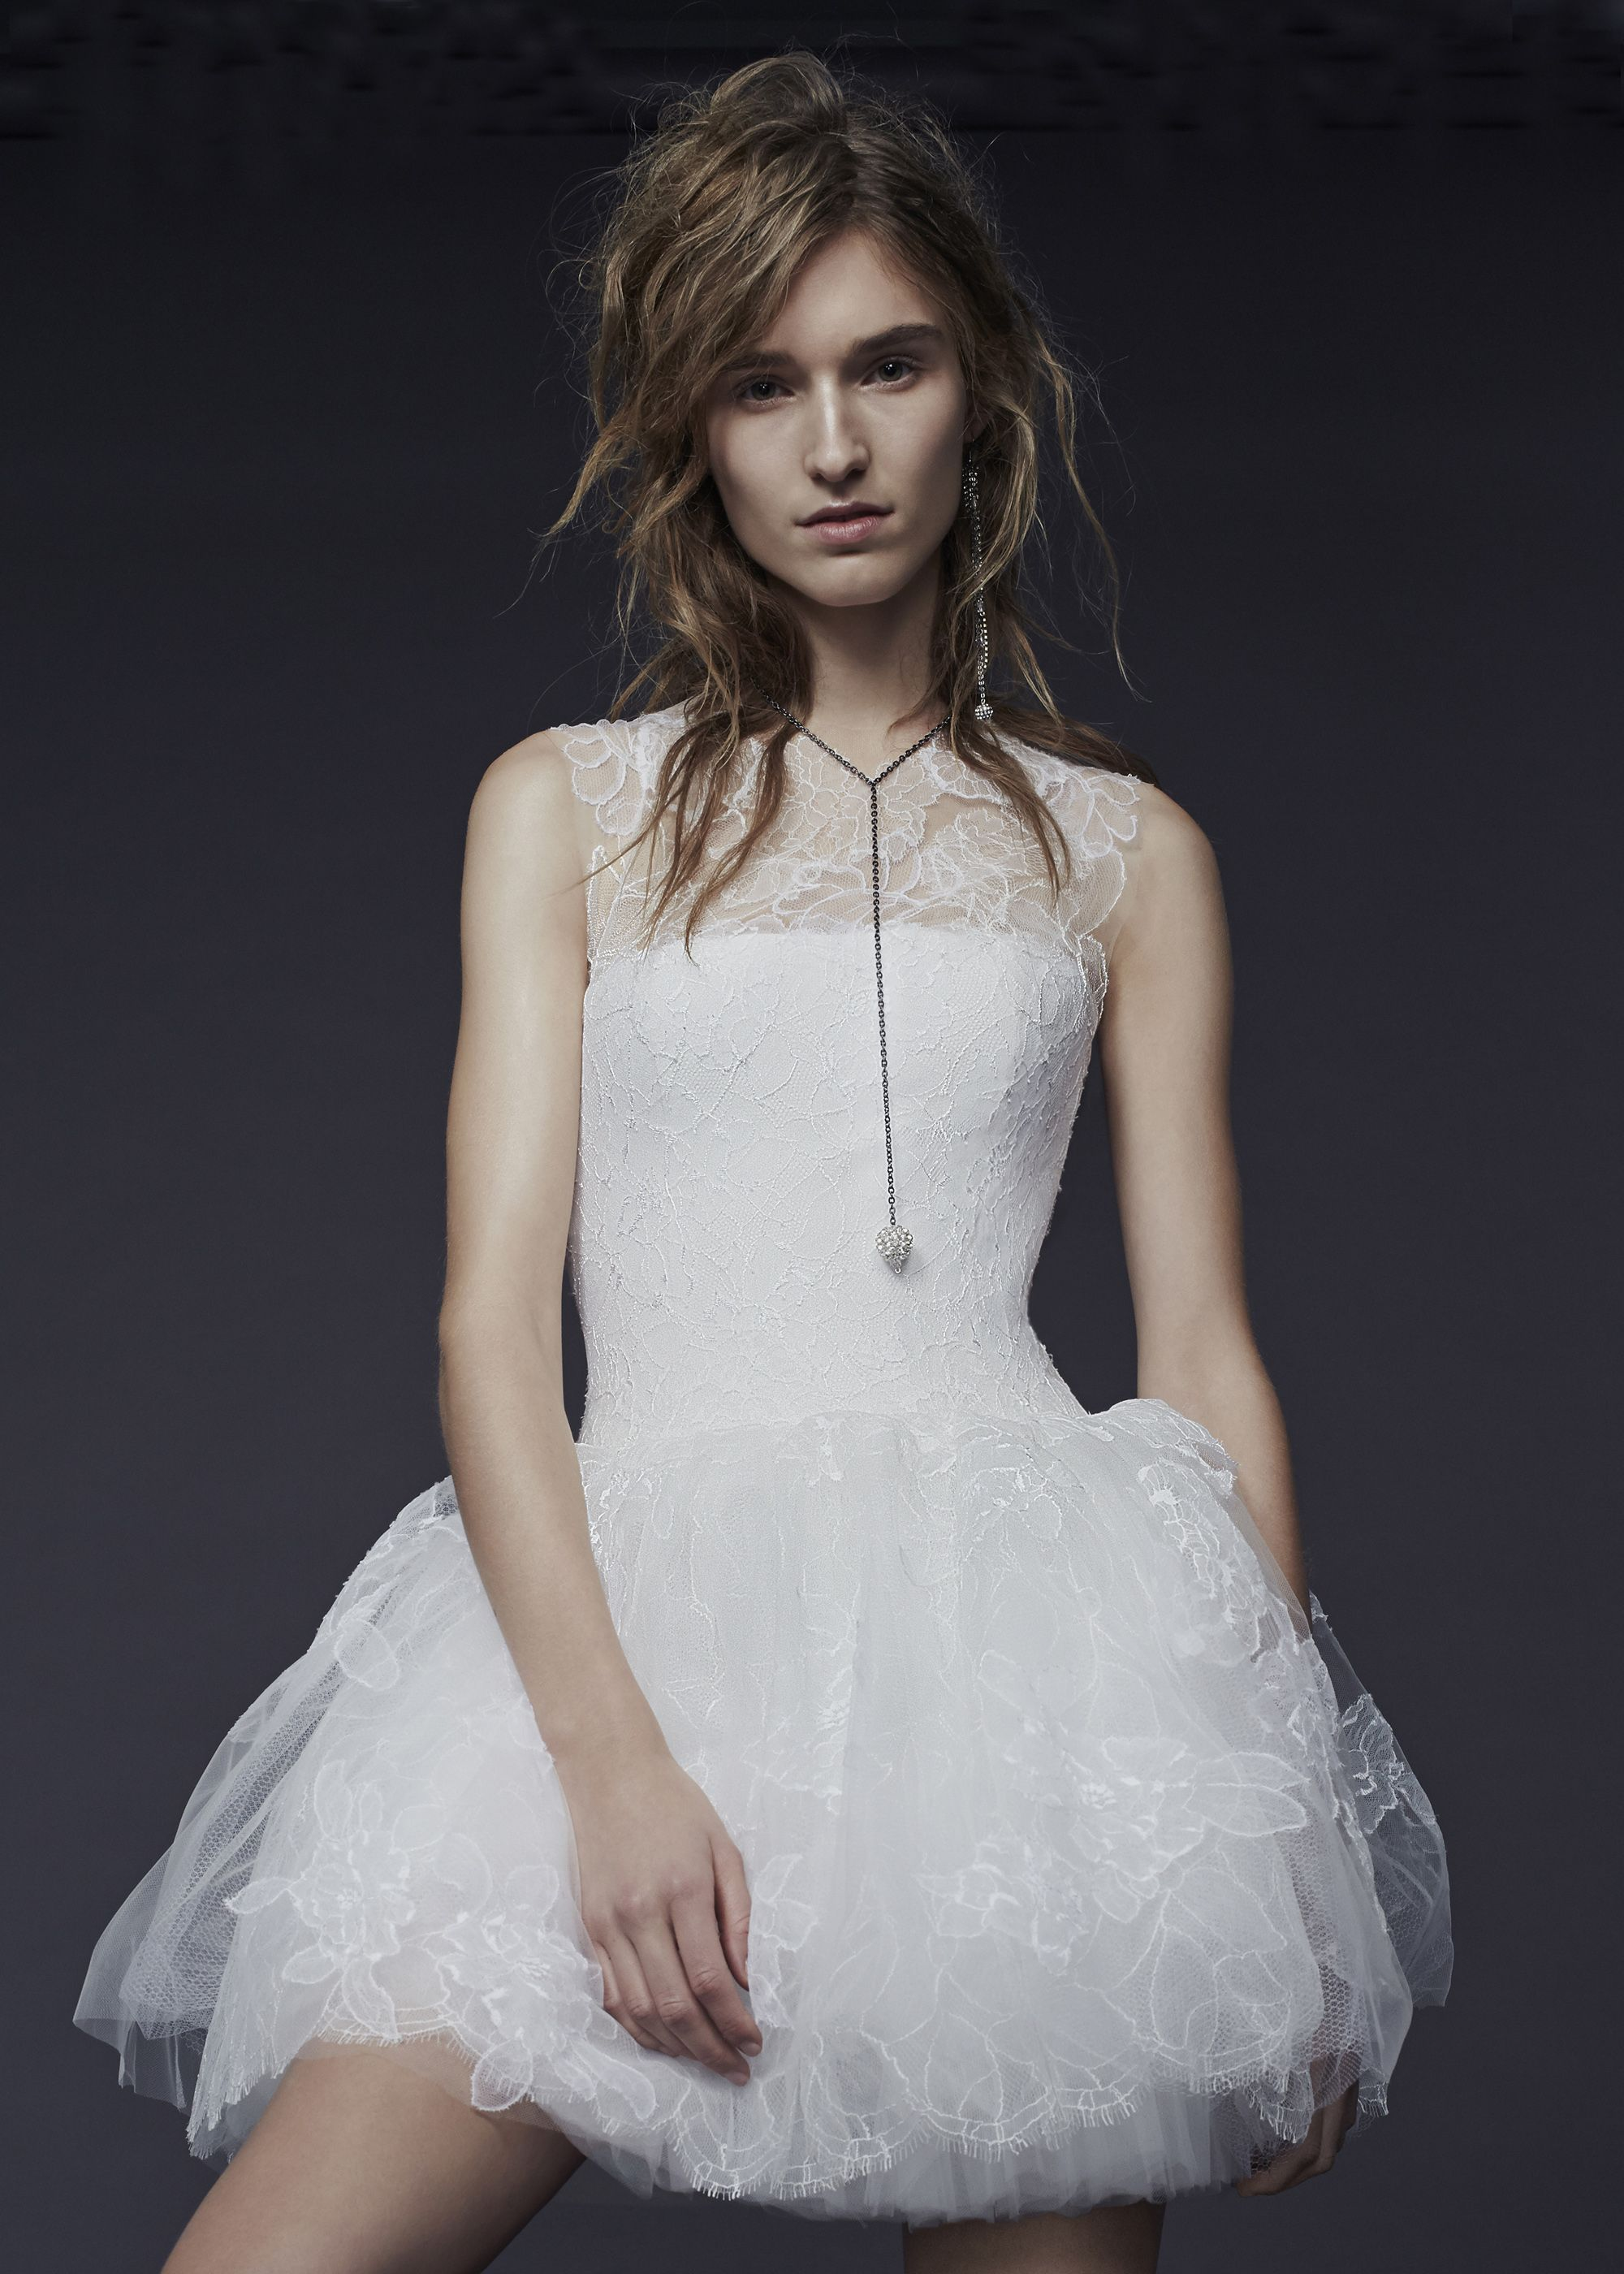 Vera wang lace wedding dress  Playful short wedding dress  Vera Wang Fall  Bridal Collection